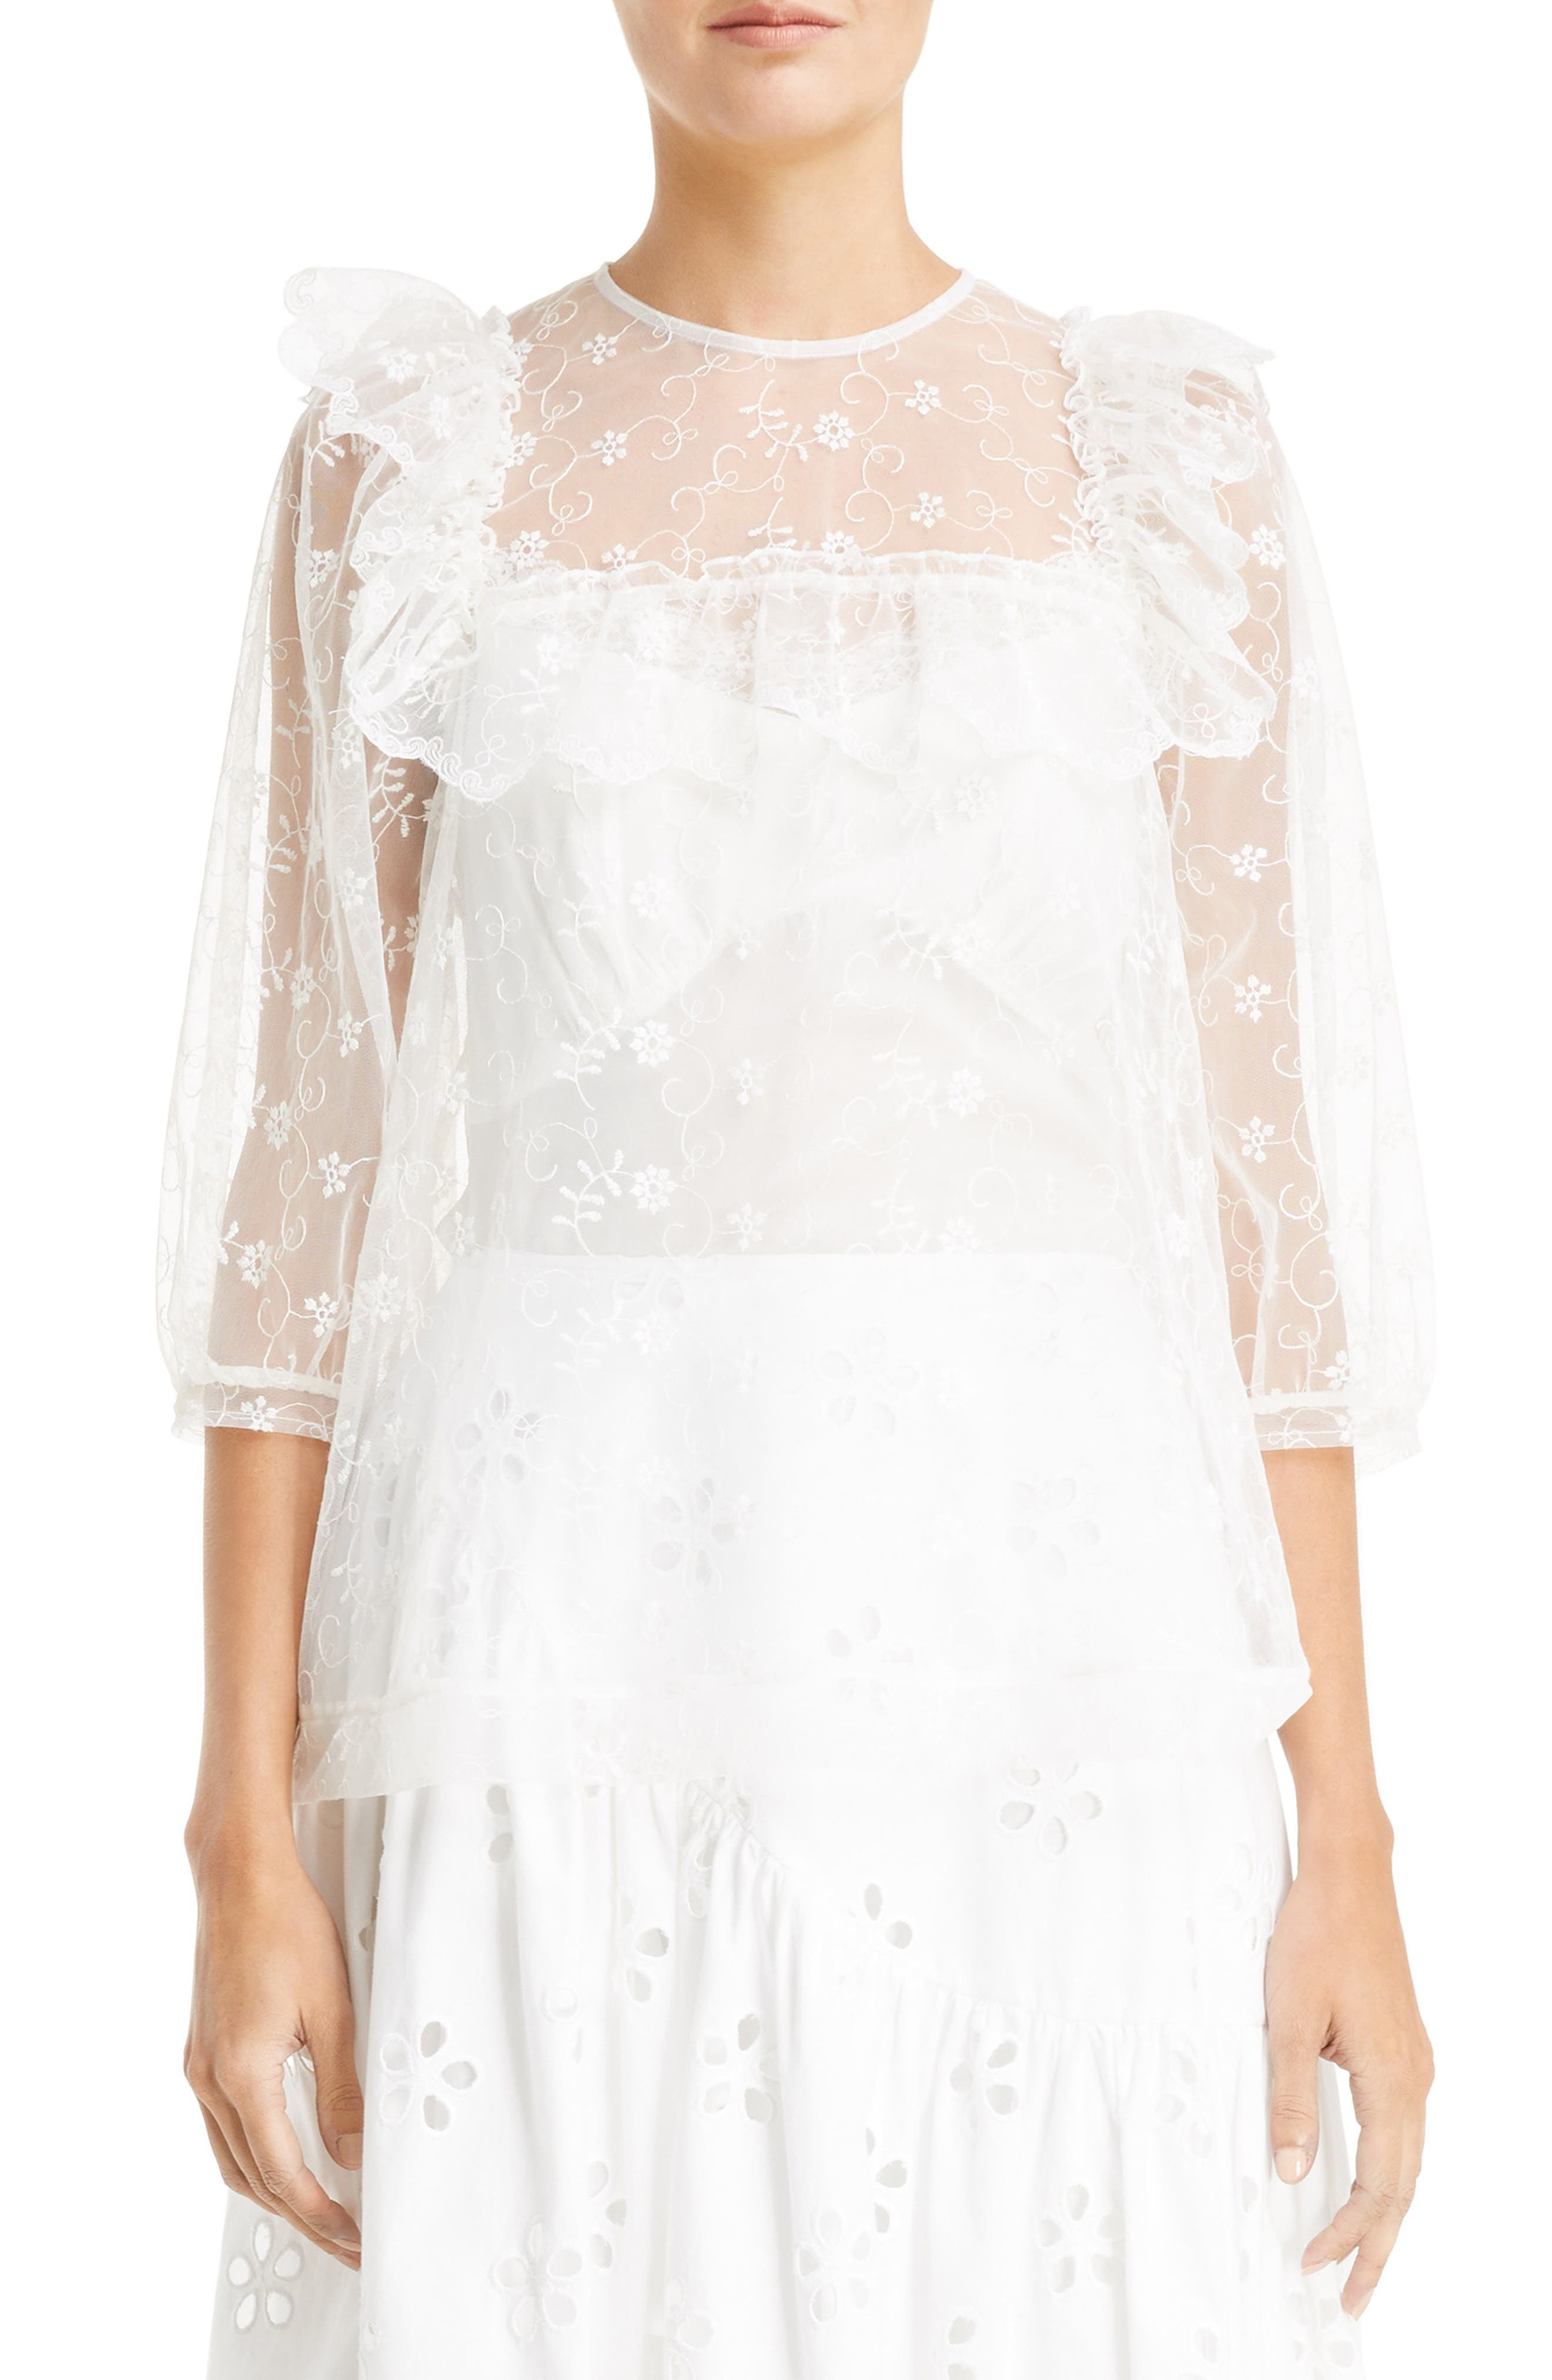 Frilled Bib Embroidered Tulle Top,                             Main thumbnail 1, color,                             900